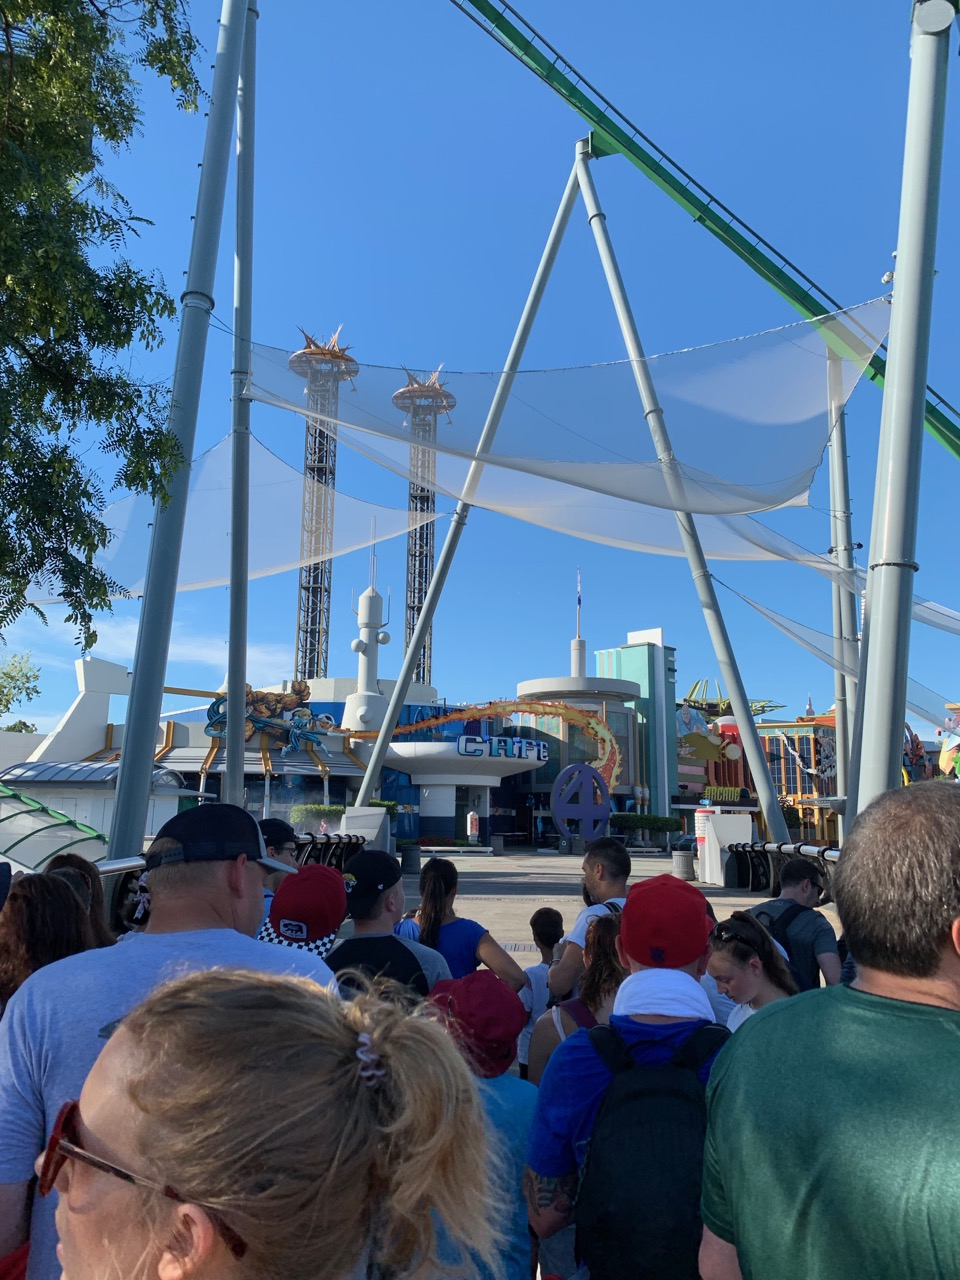 universal orlando summer 2019 trip report part 5 hulk rope.jpeg